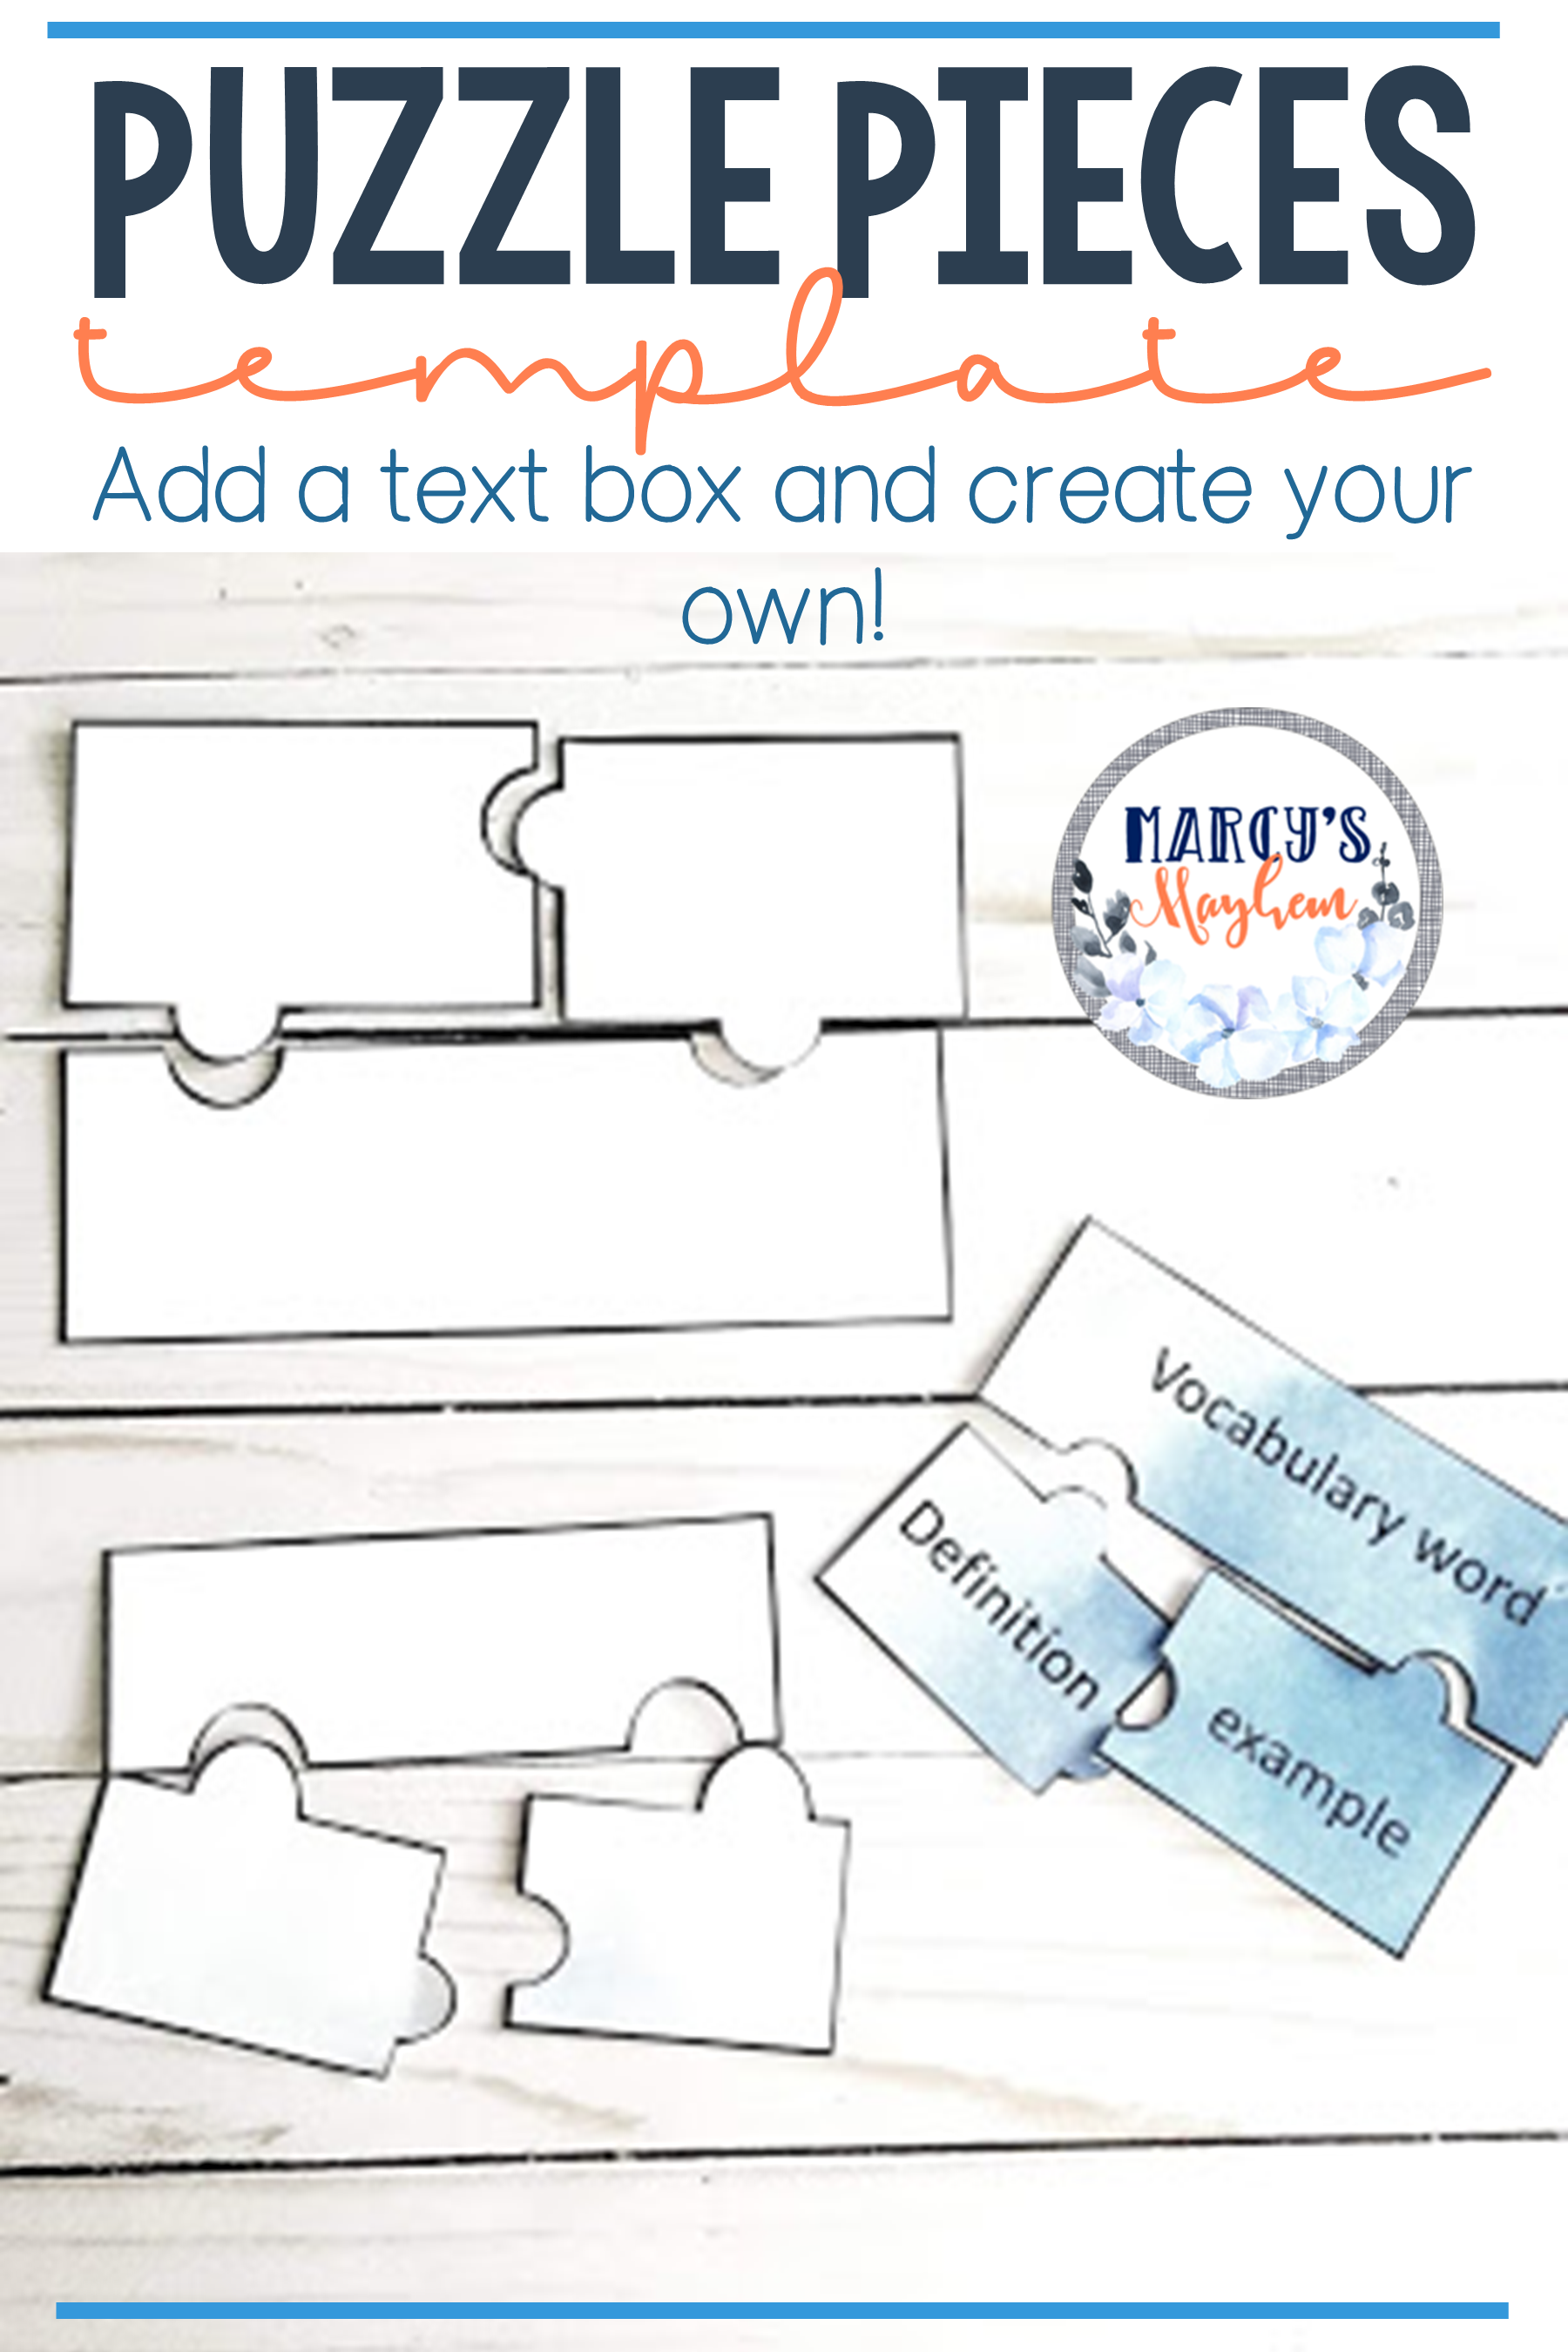 Puzzle Pieces Template With Images